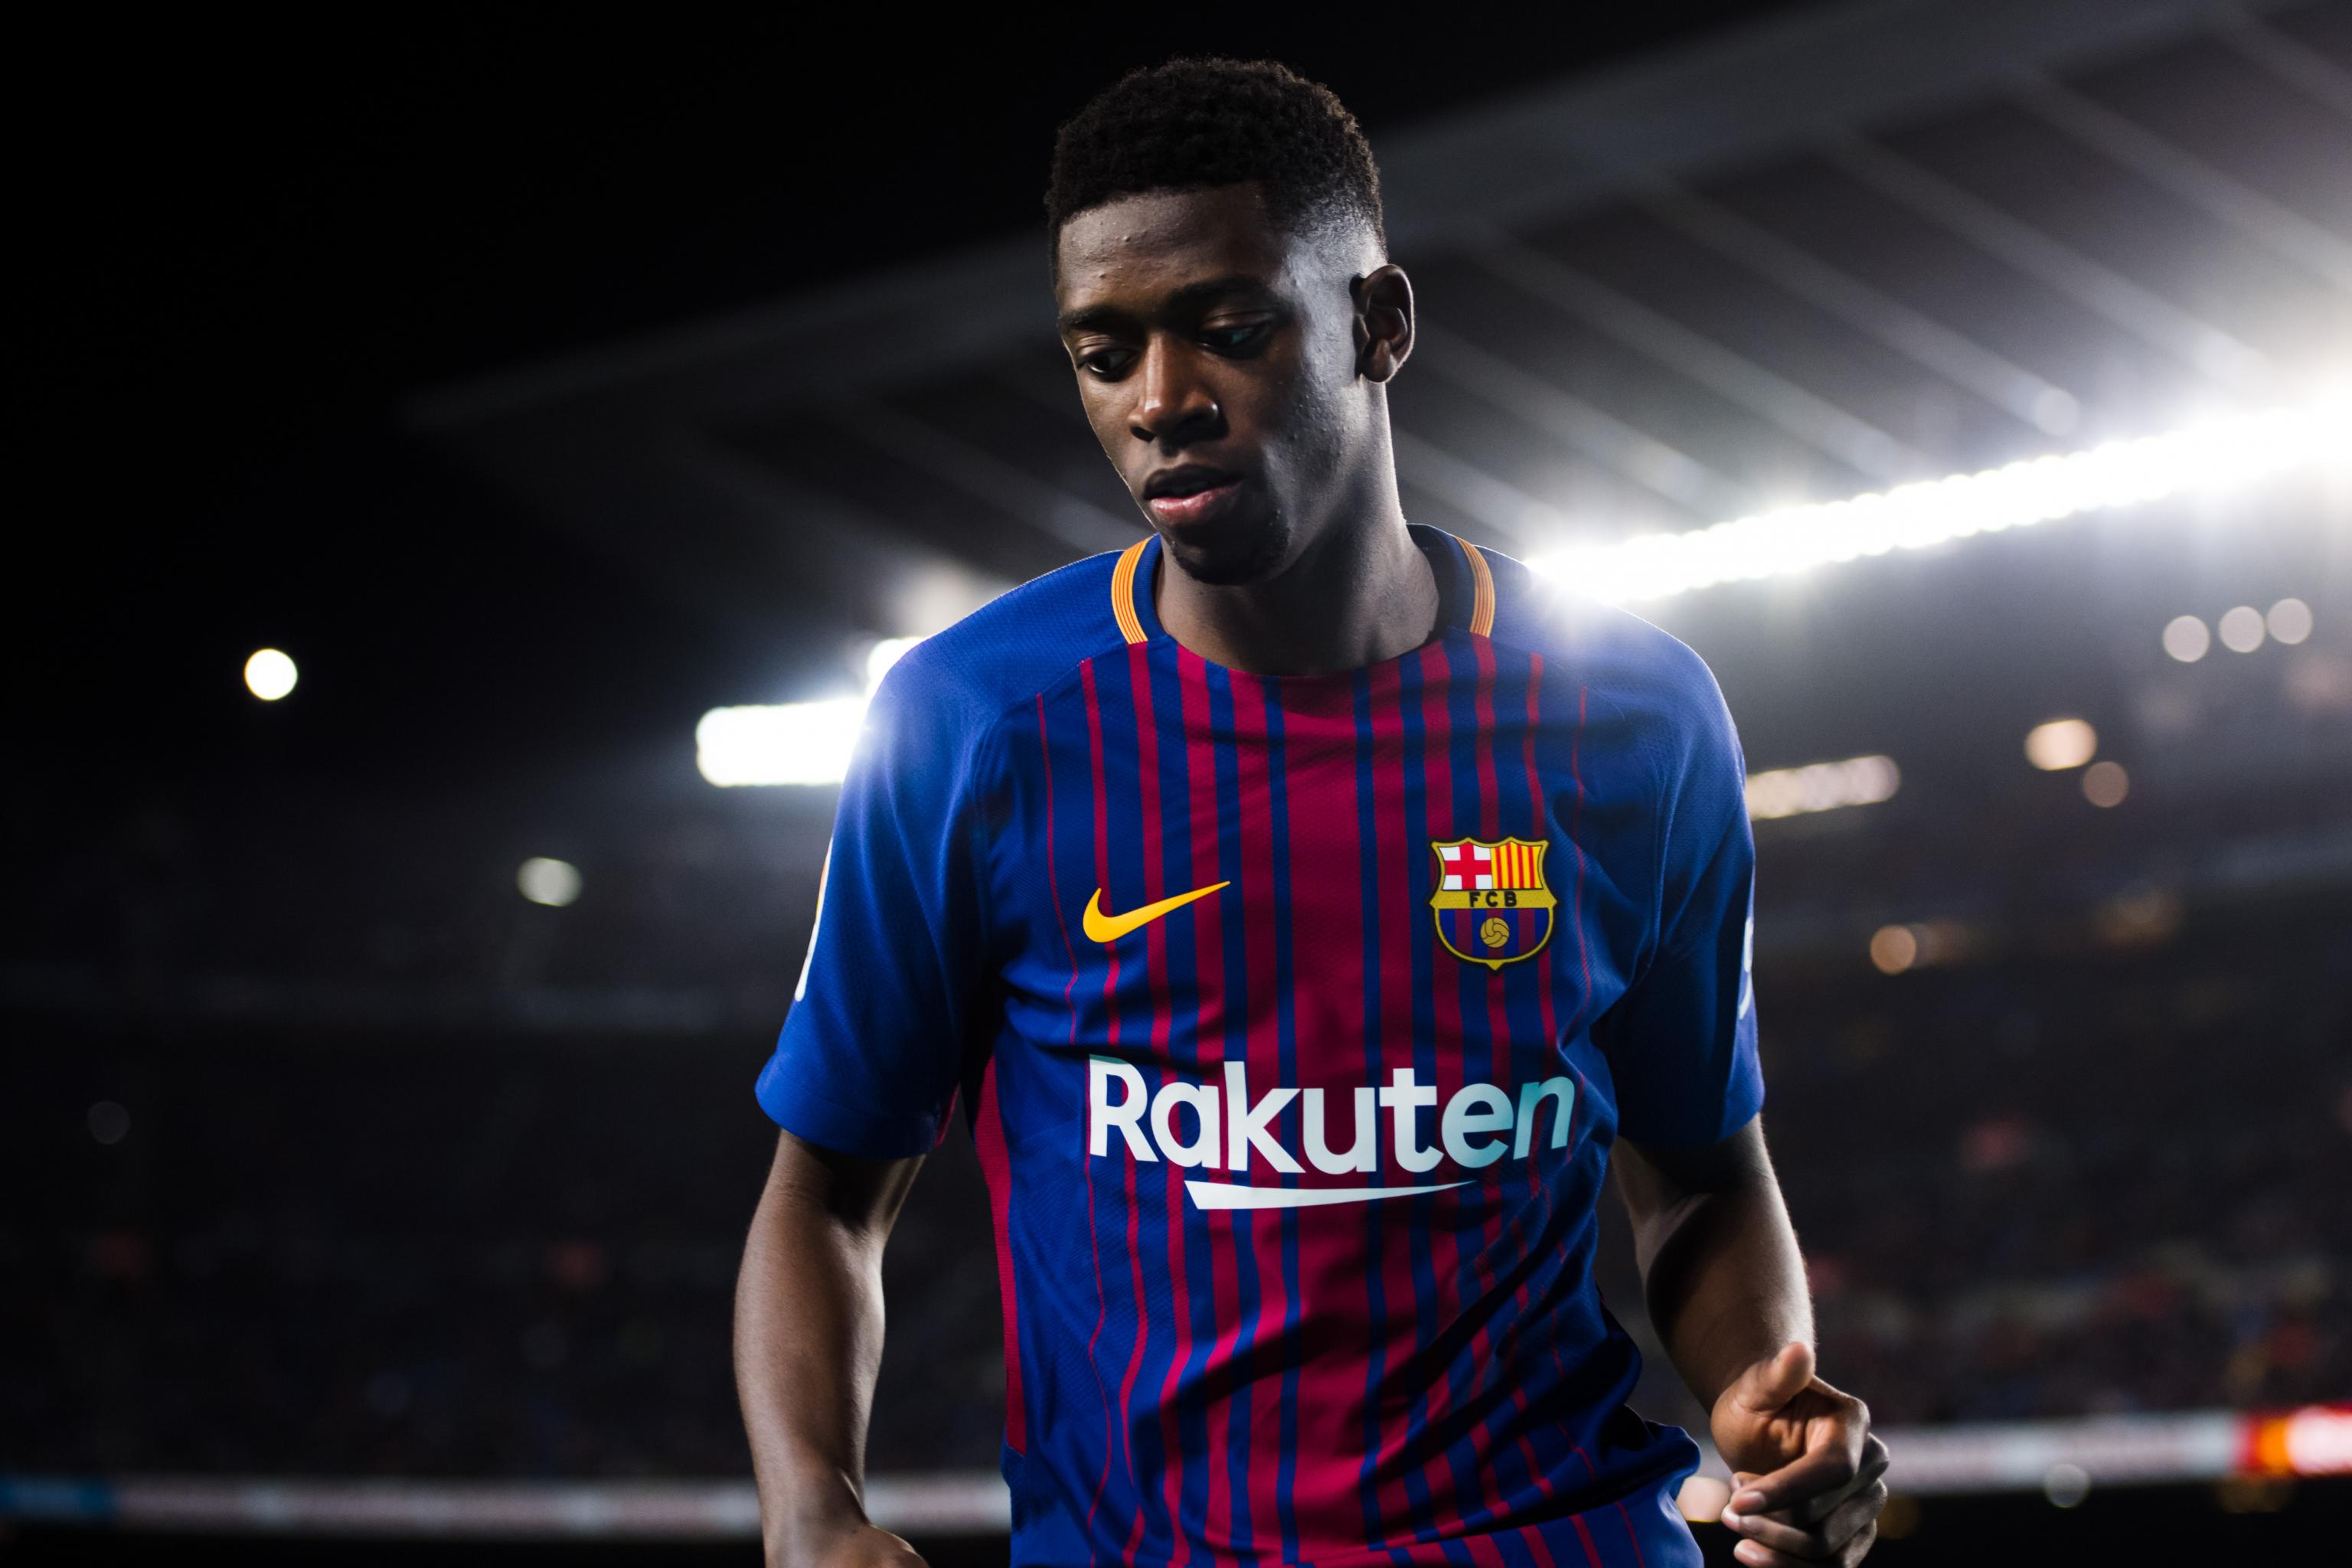 finest selection 604e5 cce86 Barcelona Transfer News: Ousmane Dembele Responds to Exit ...